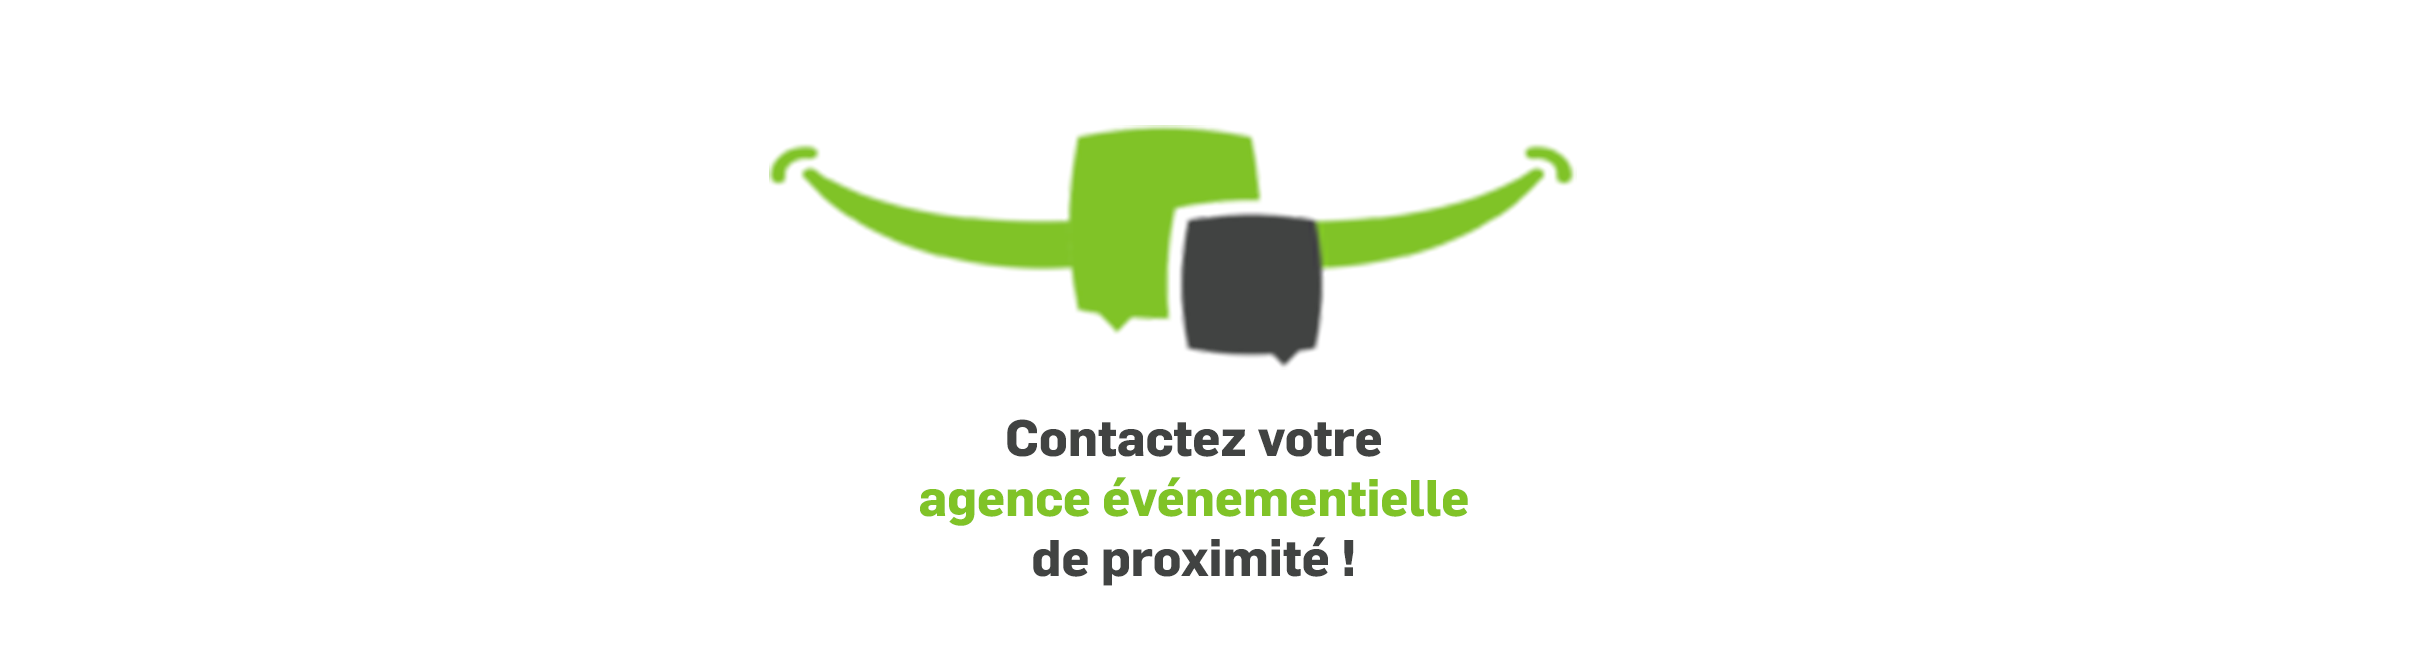 contact agence event